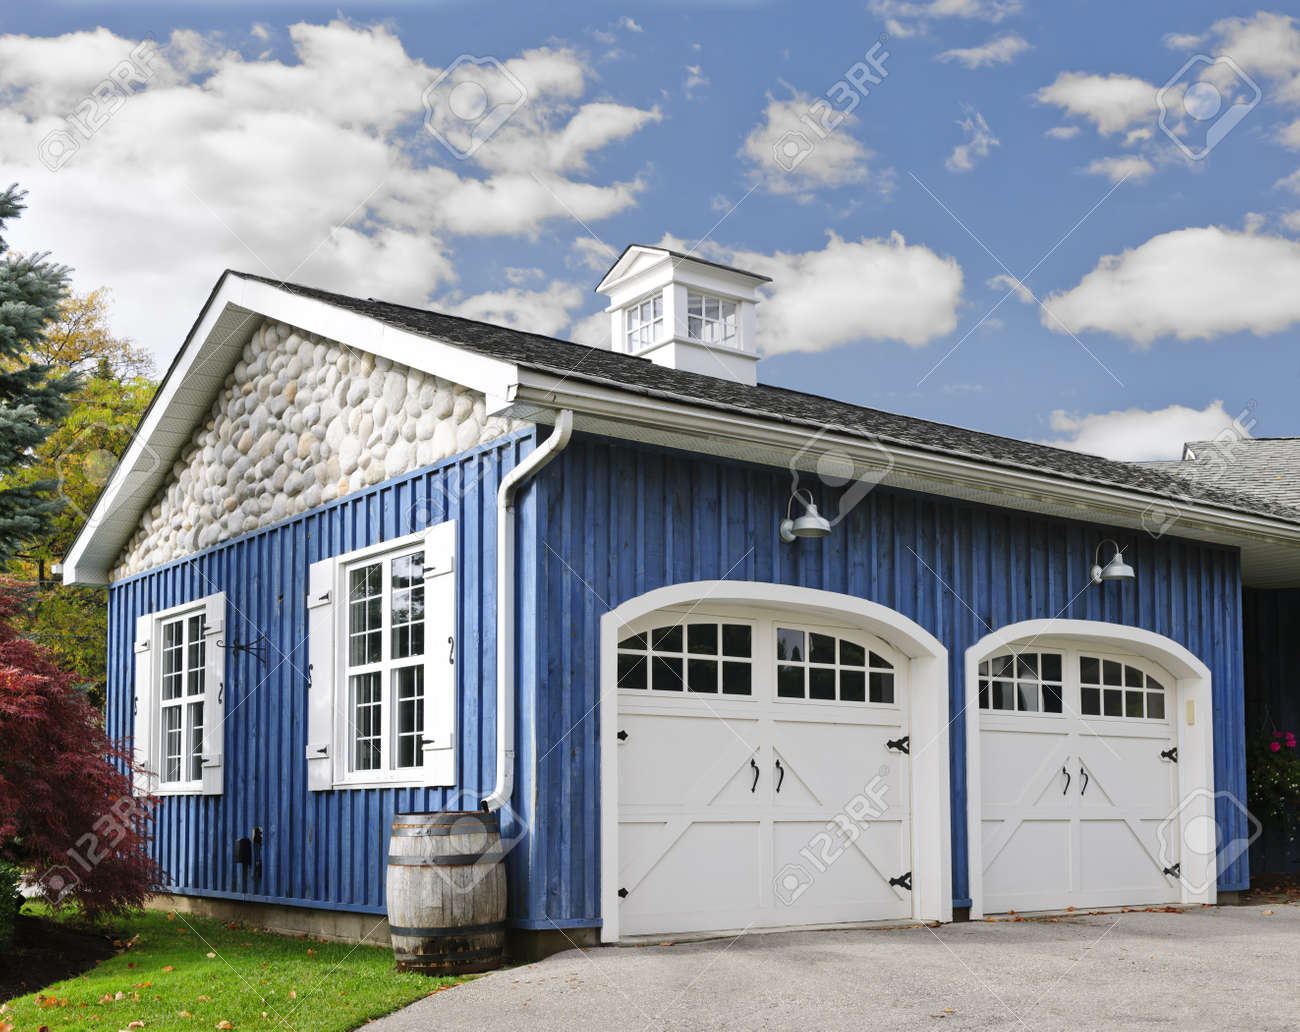 Double car garage with white doors and blue exterior Stock Photo - 16524169